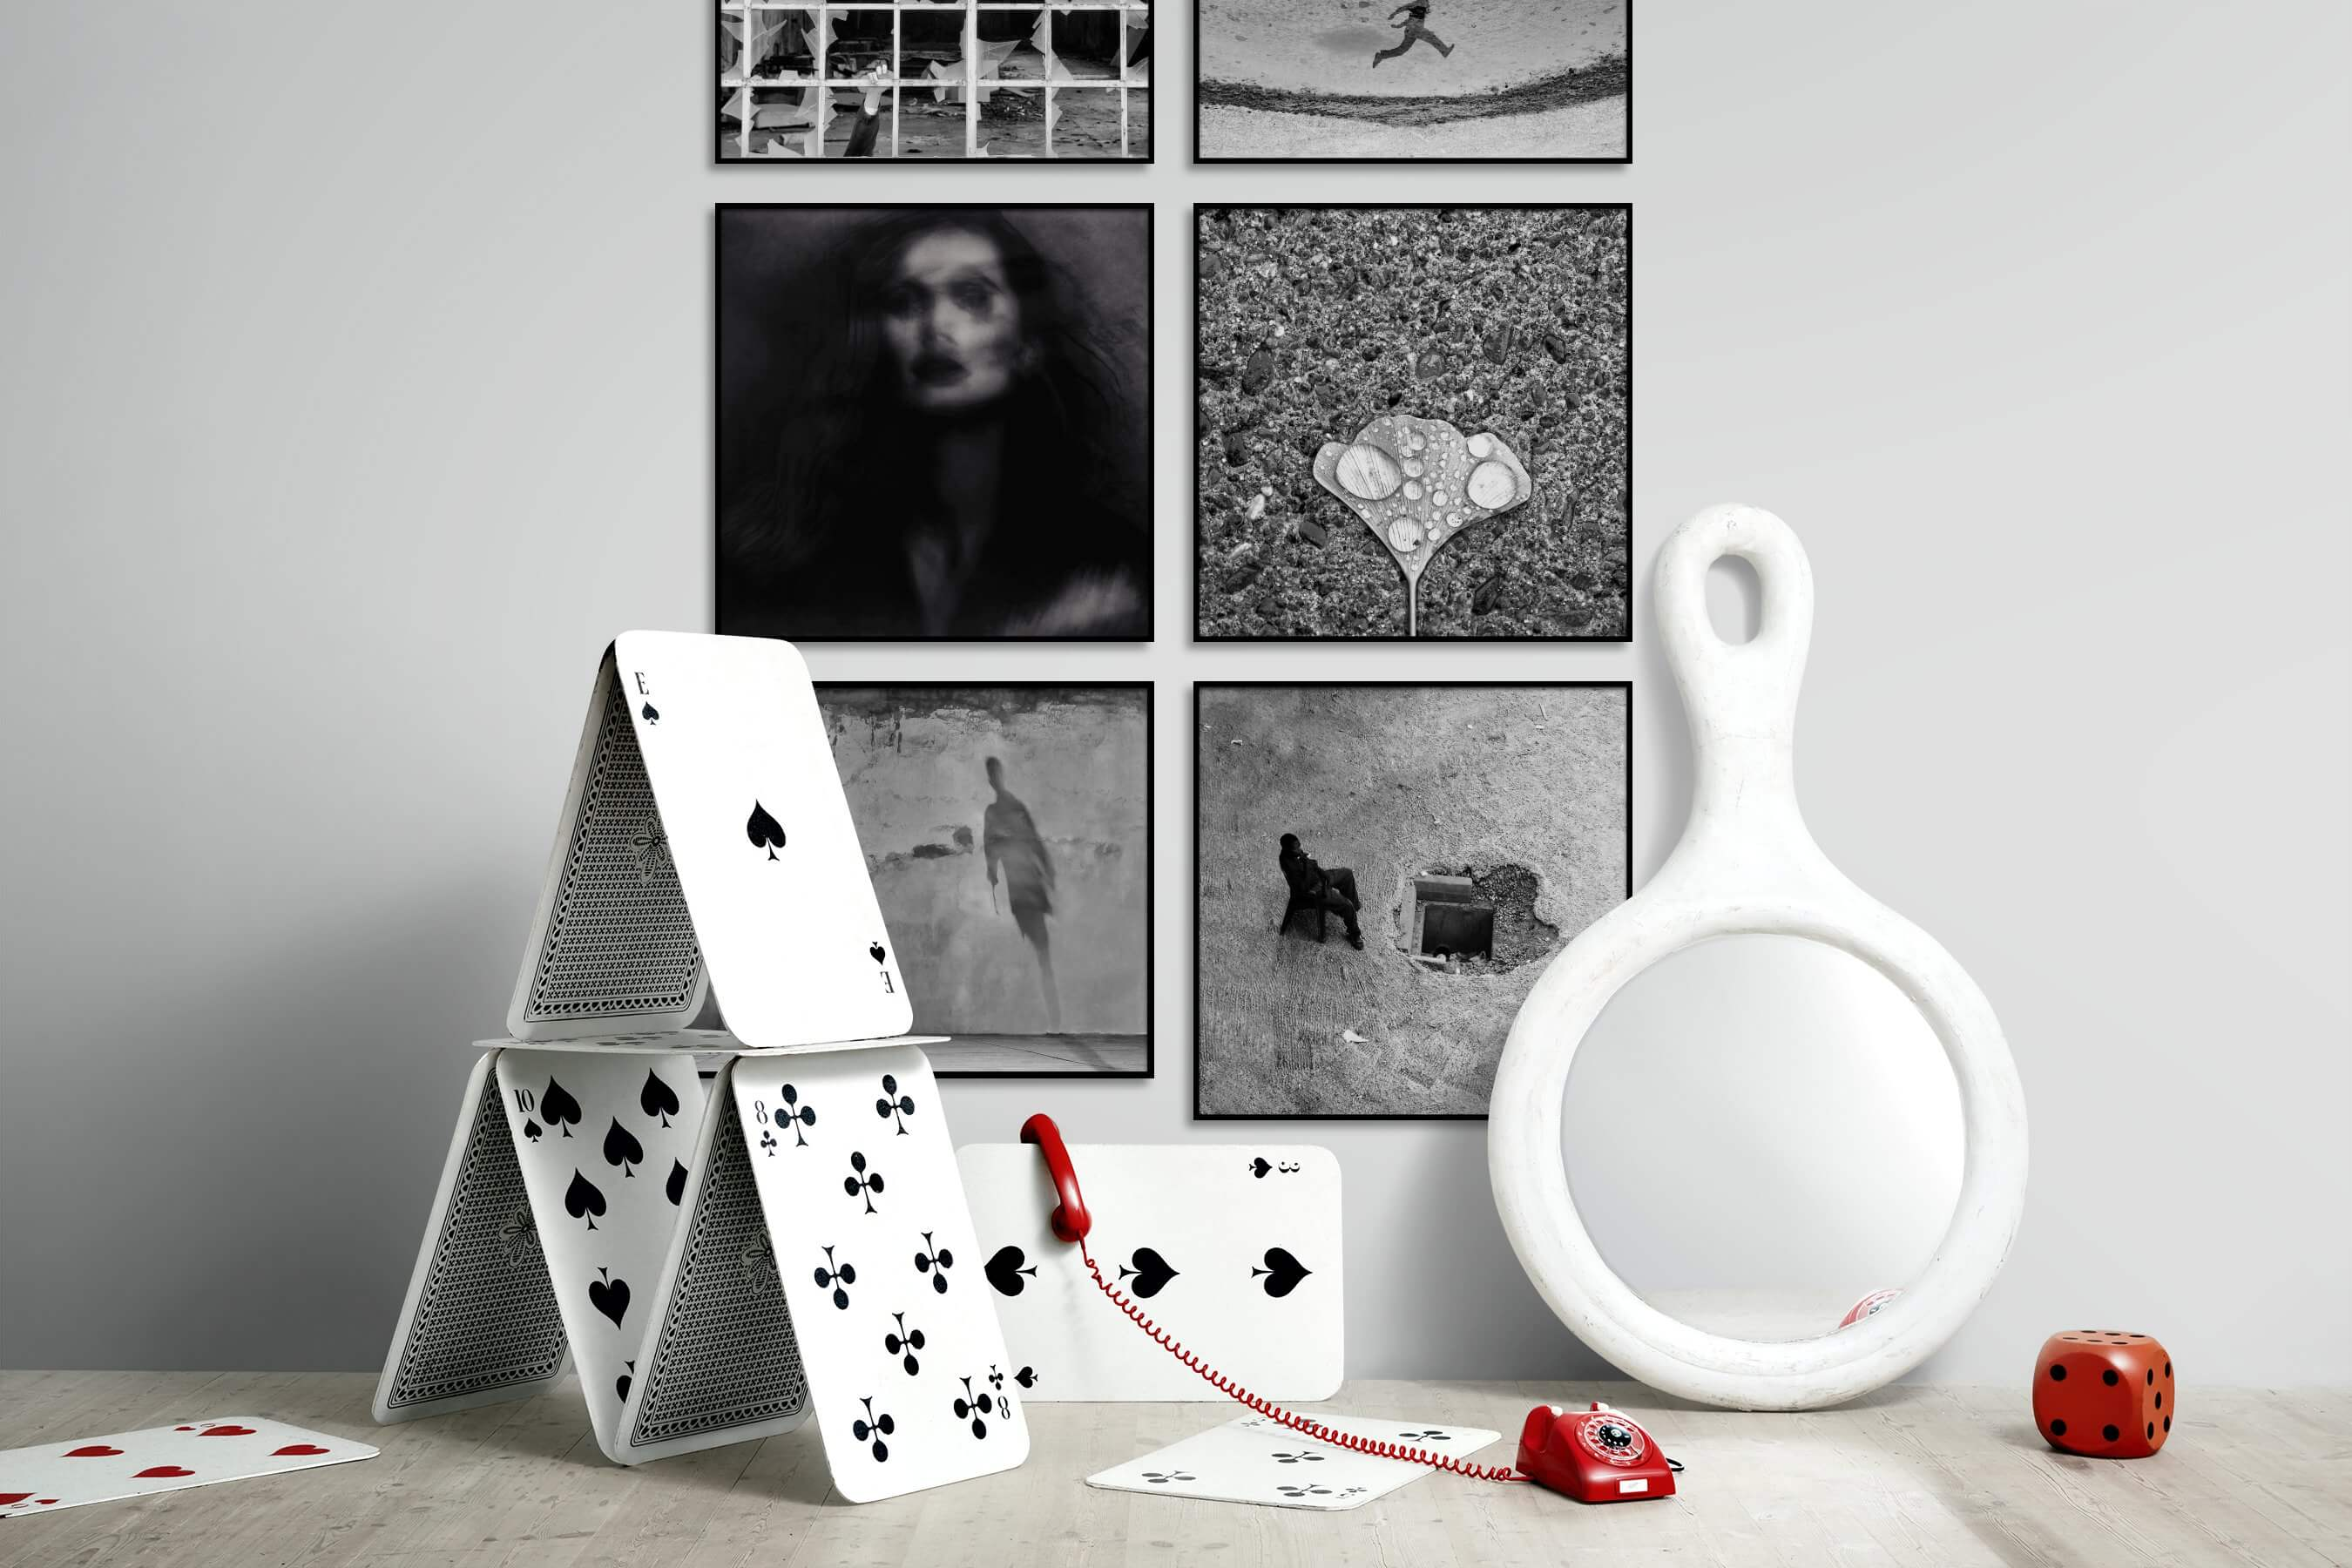 Gallery wall idea with six framed pictures arranged on a wall depicting Artsy, Black & White, For the Maximalist, City Life, For the Minimalist, and Flowers & Plants